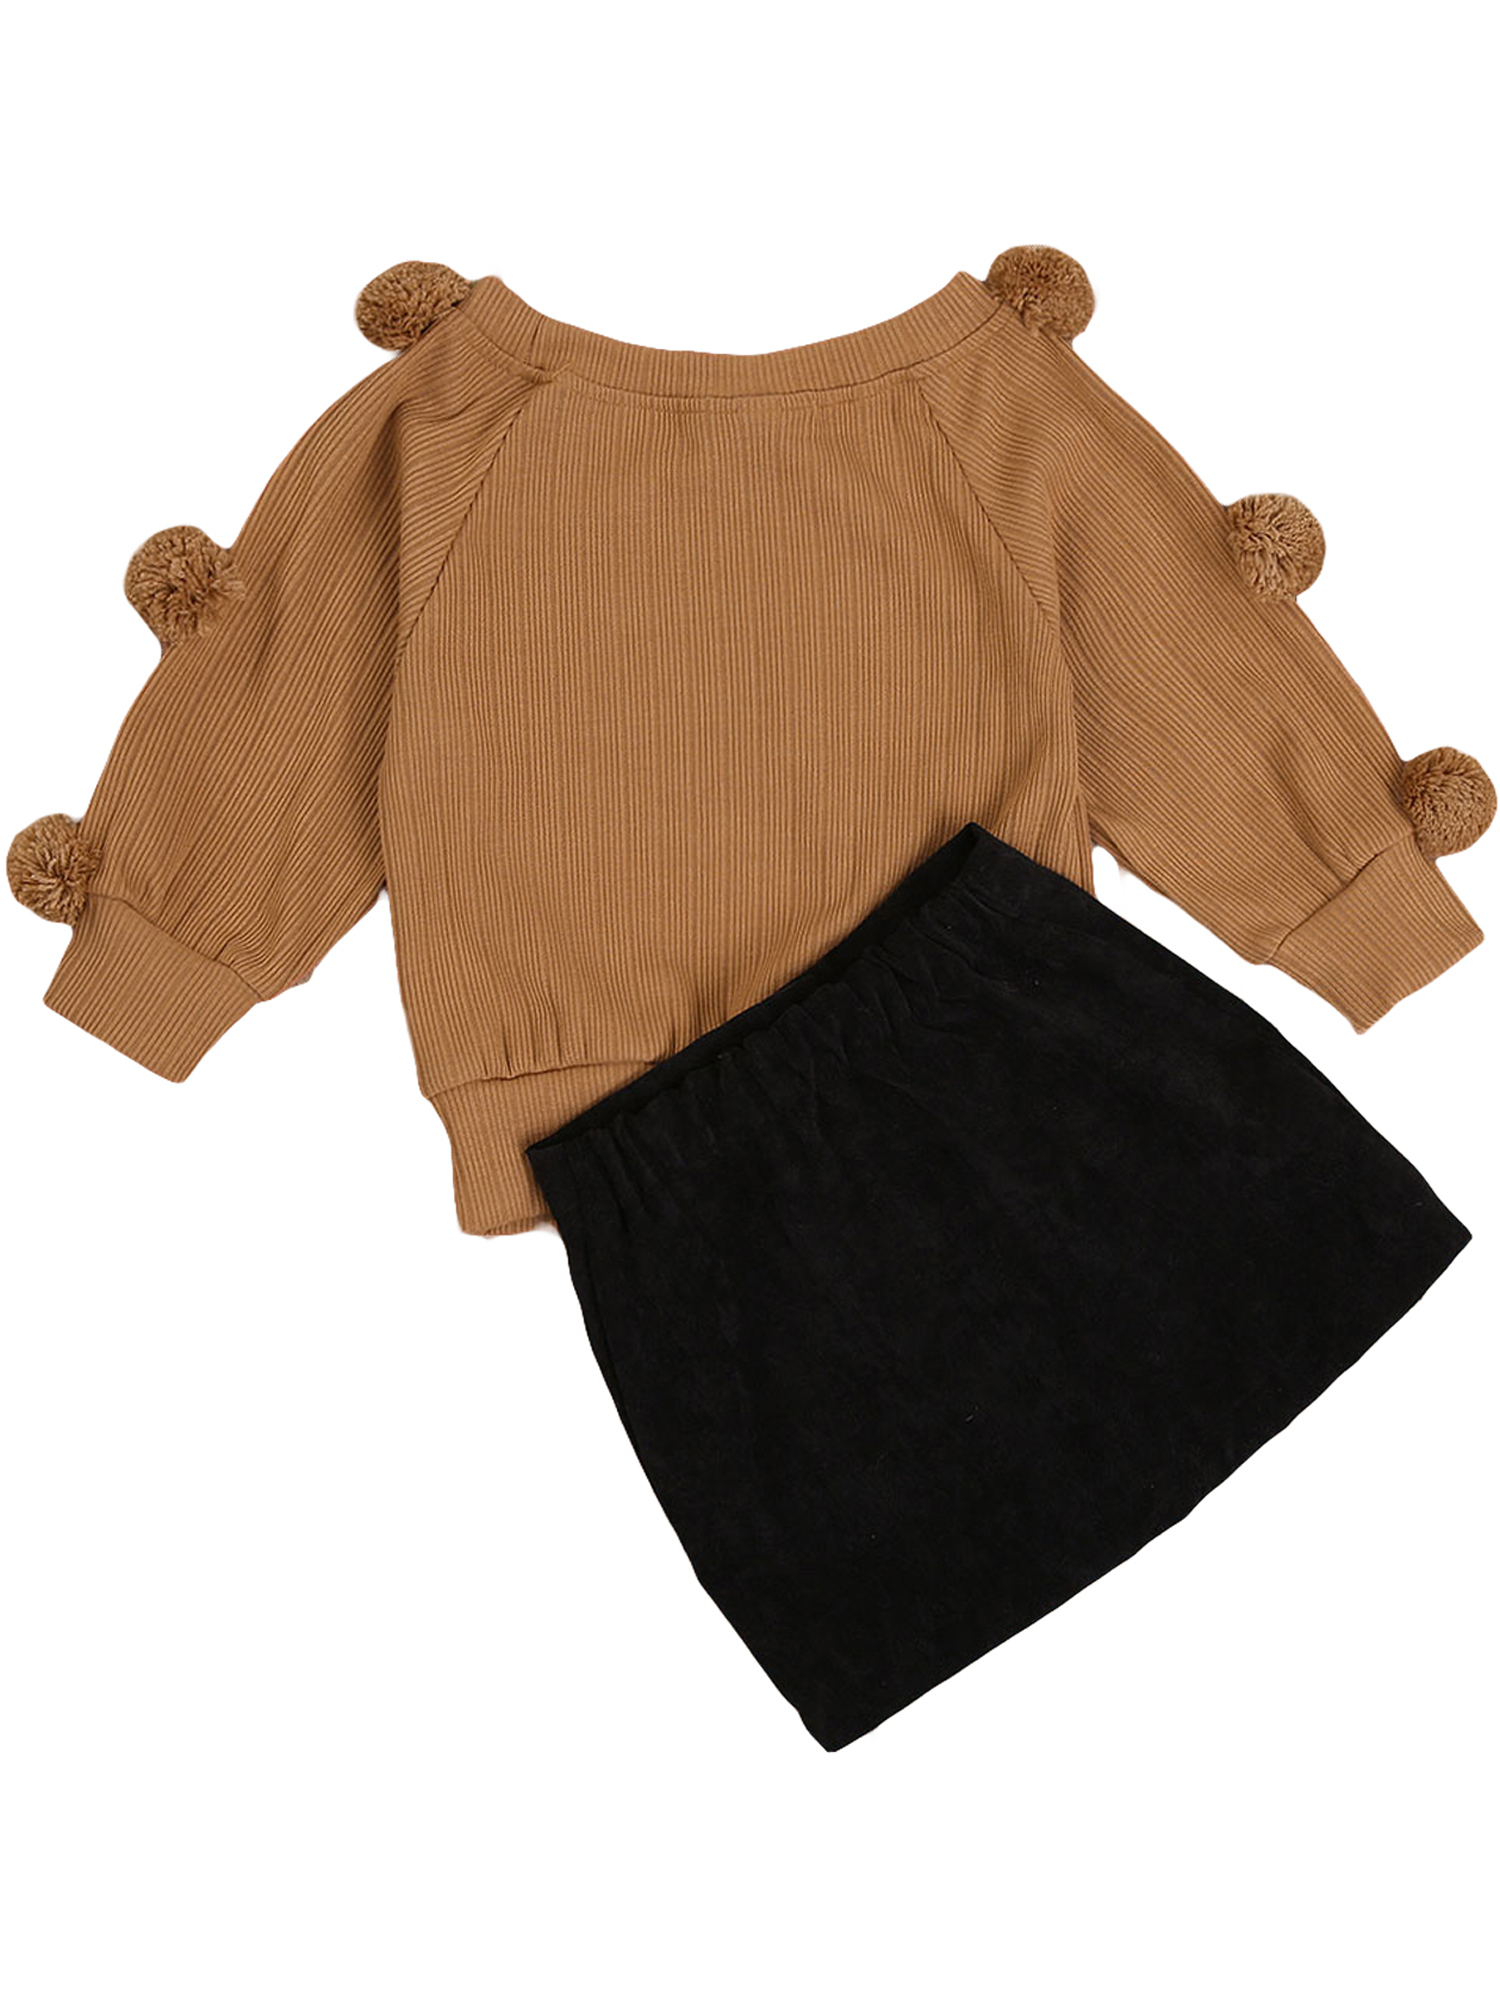 2Pcs Toddler Baby Girl Fall Winter Clothes Pompom Knit Sweater Long Sleeve T-Shirt Tops Button Mini Skirt Outfits